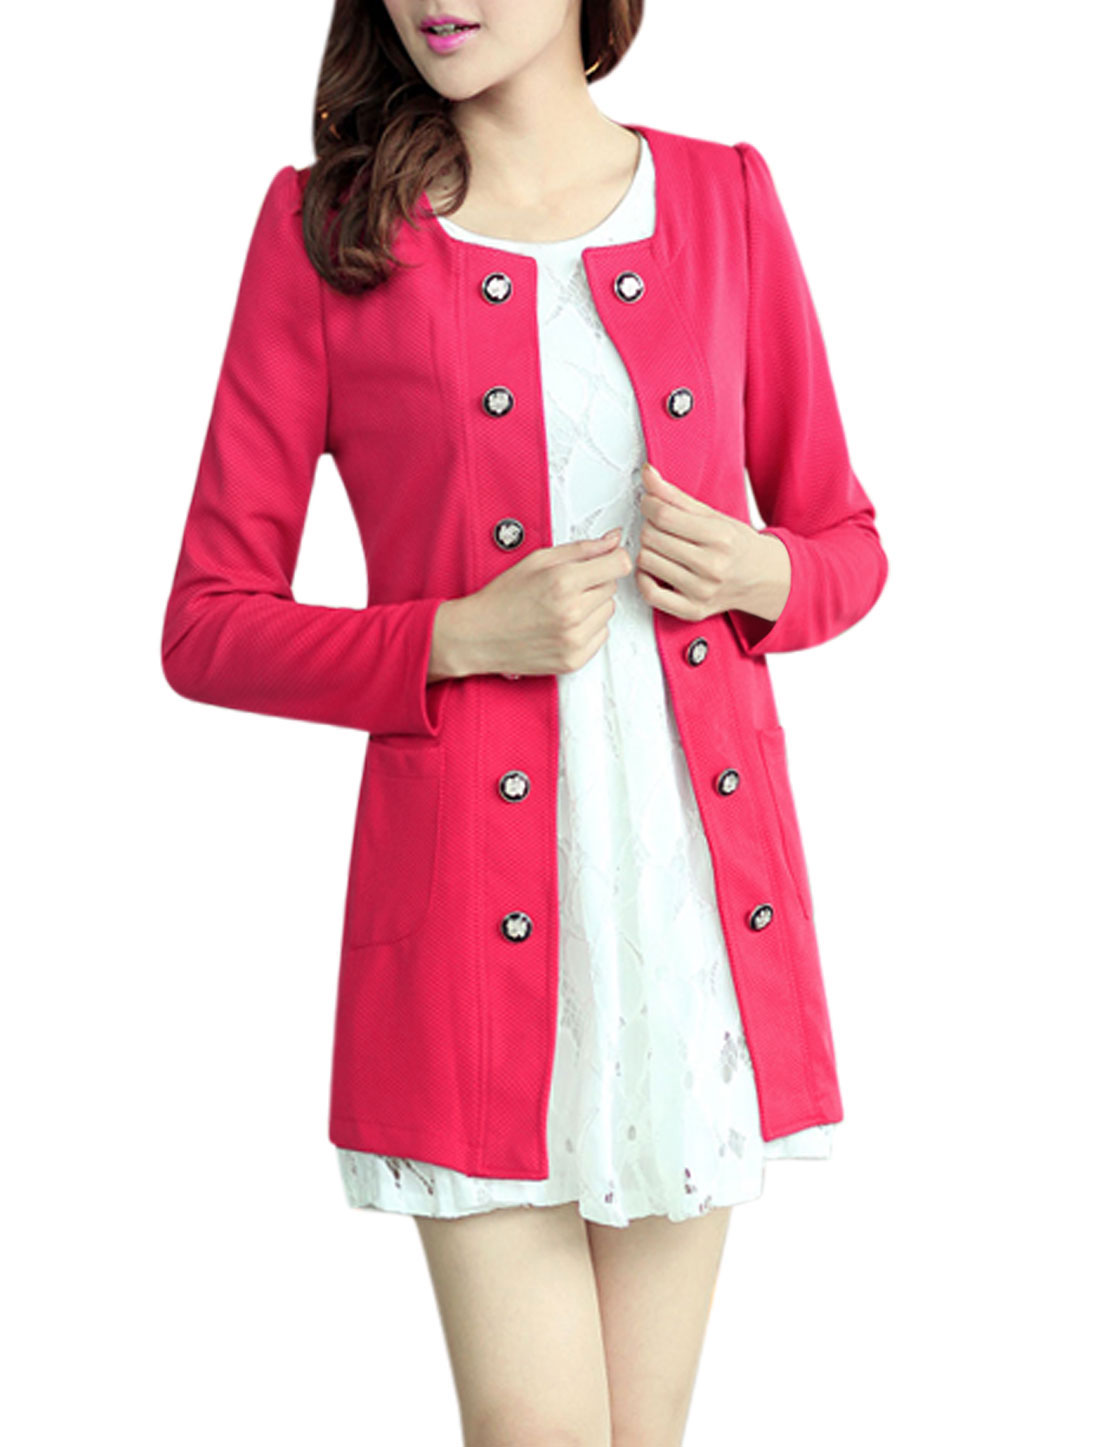 Lady Long Sleeves Double Pocket Front Fuchsia Trench Jacket L